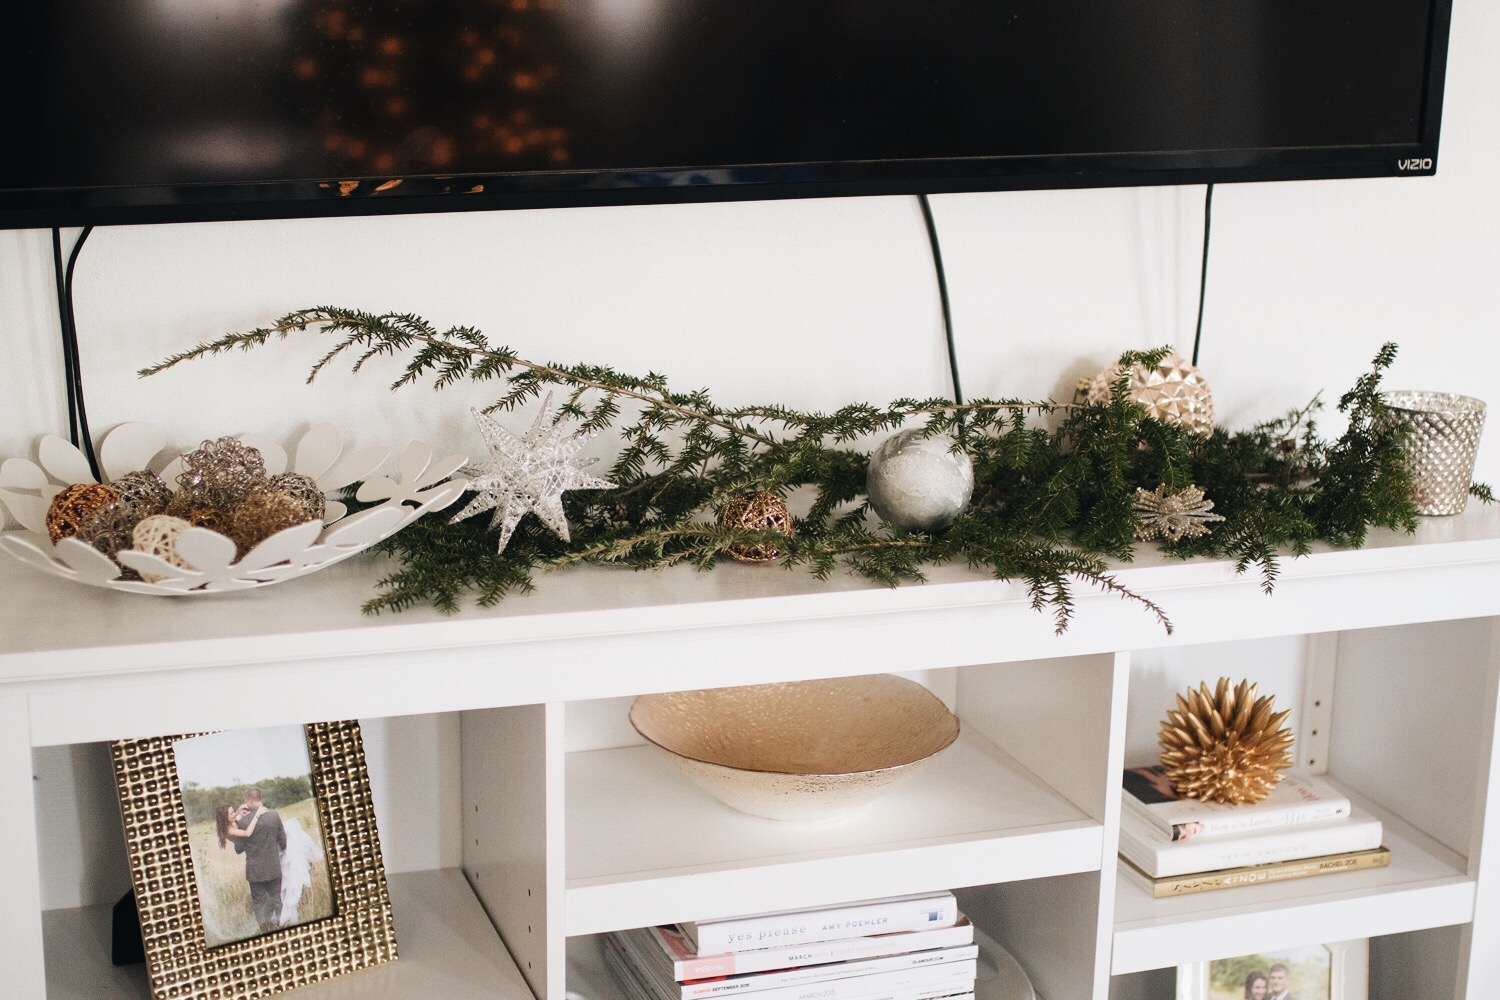 pretty christmas decor for a console table using fresh greenery clippings